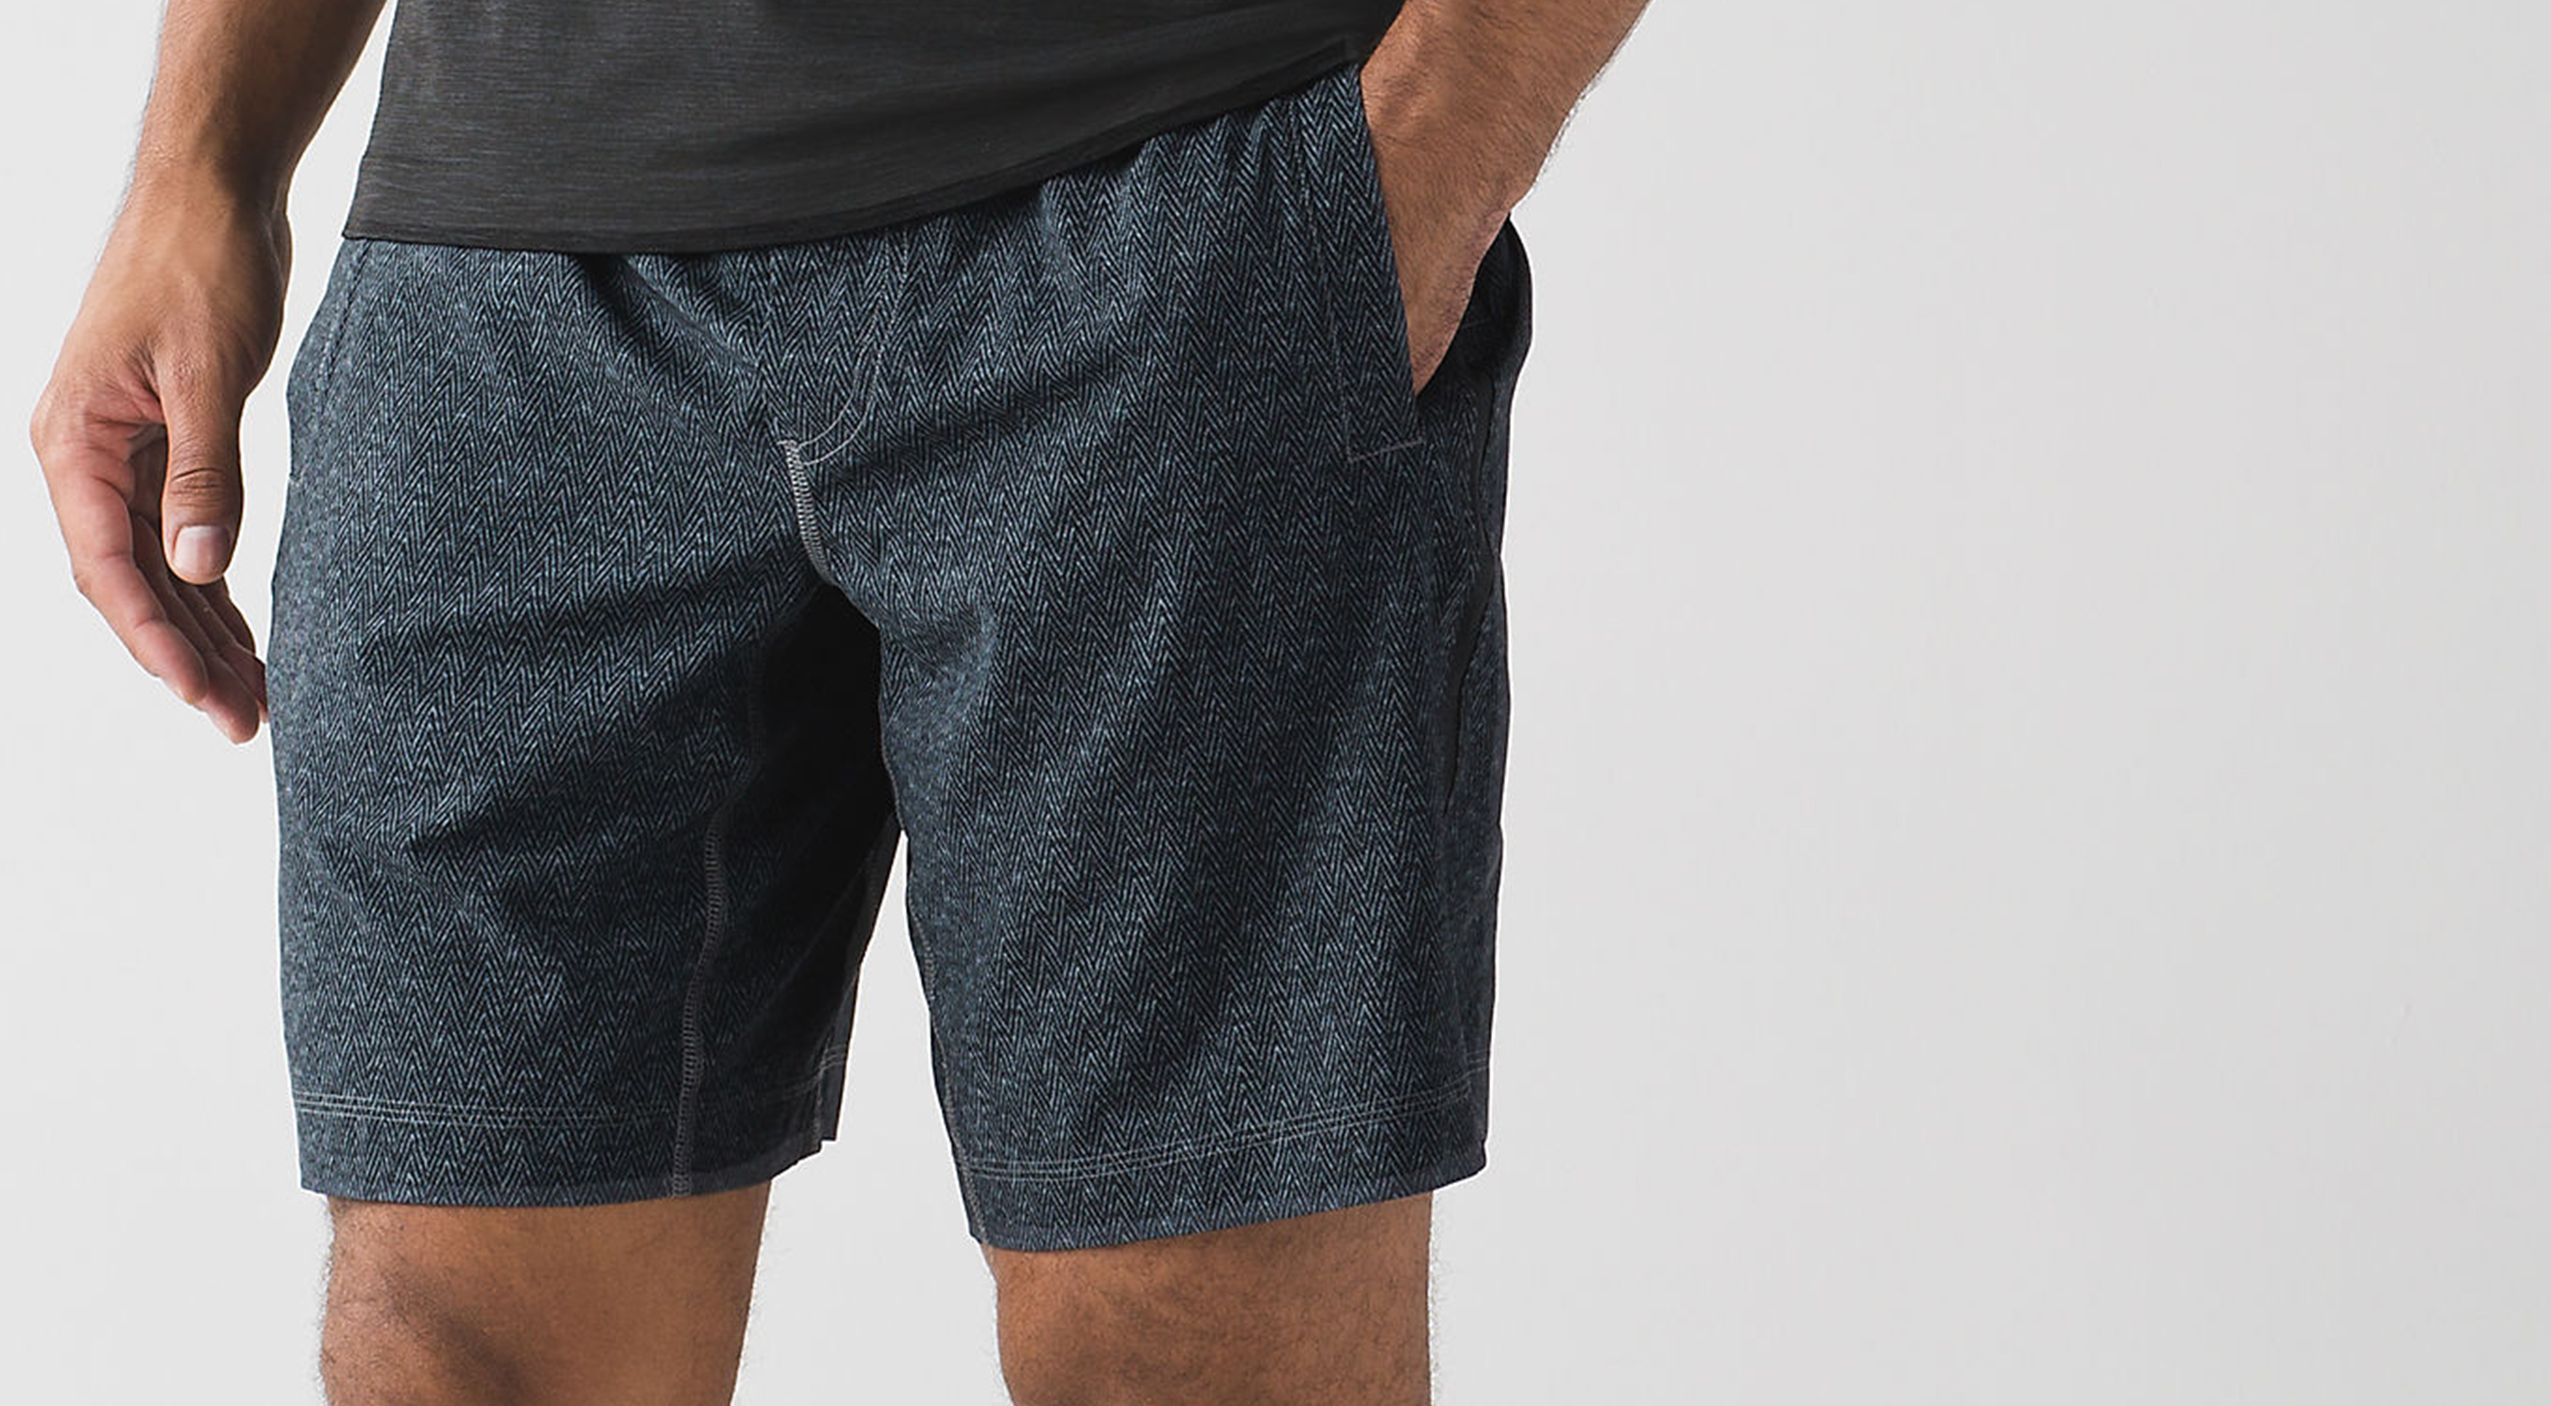 Men's Shorts: Getting It Right